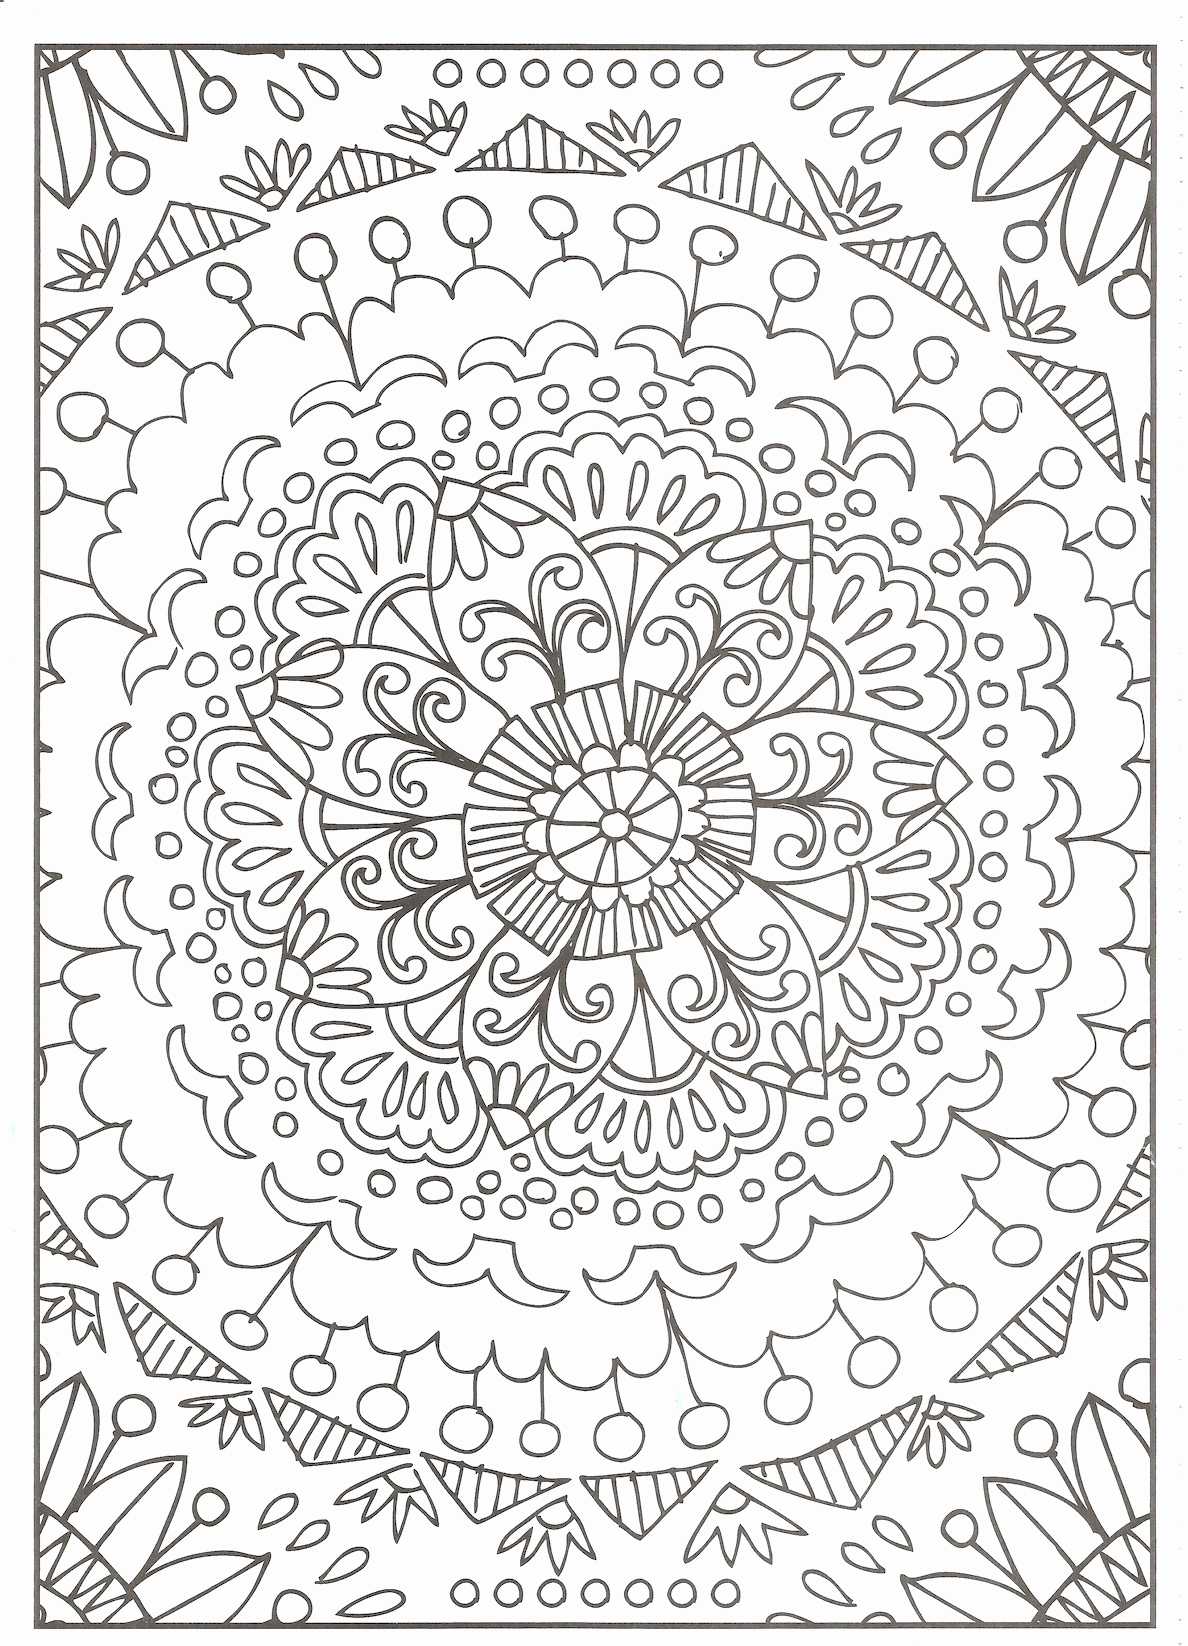 1188x1646 Footprints Coloring Page Inspirational How To Make Coloring Pages